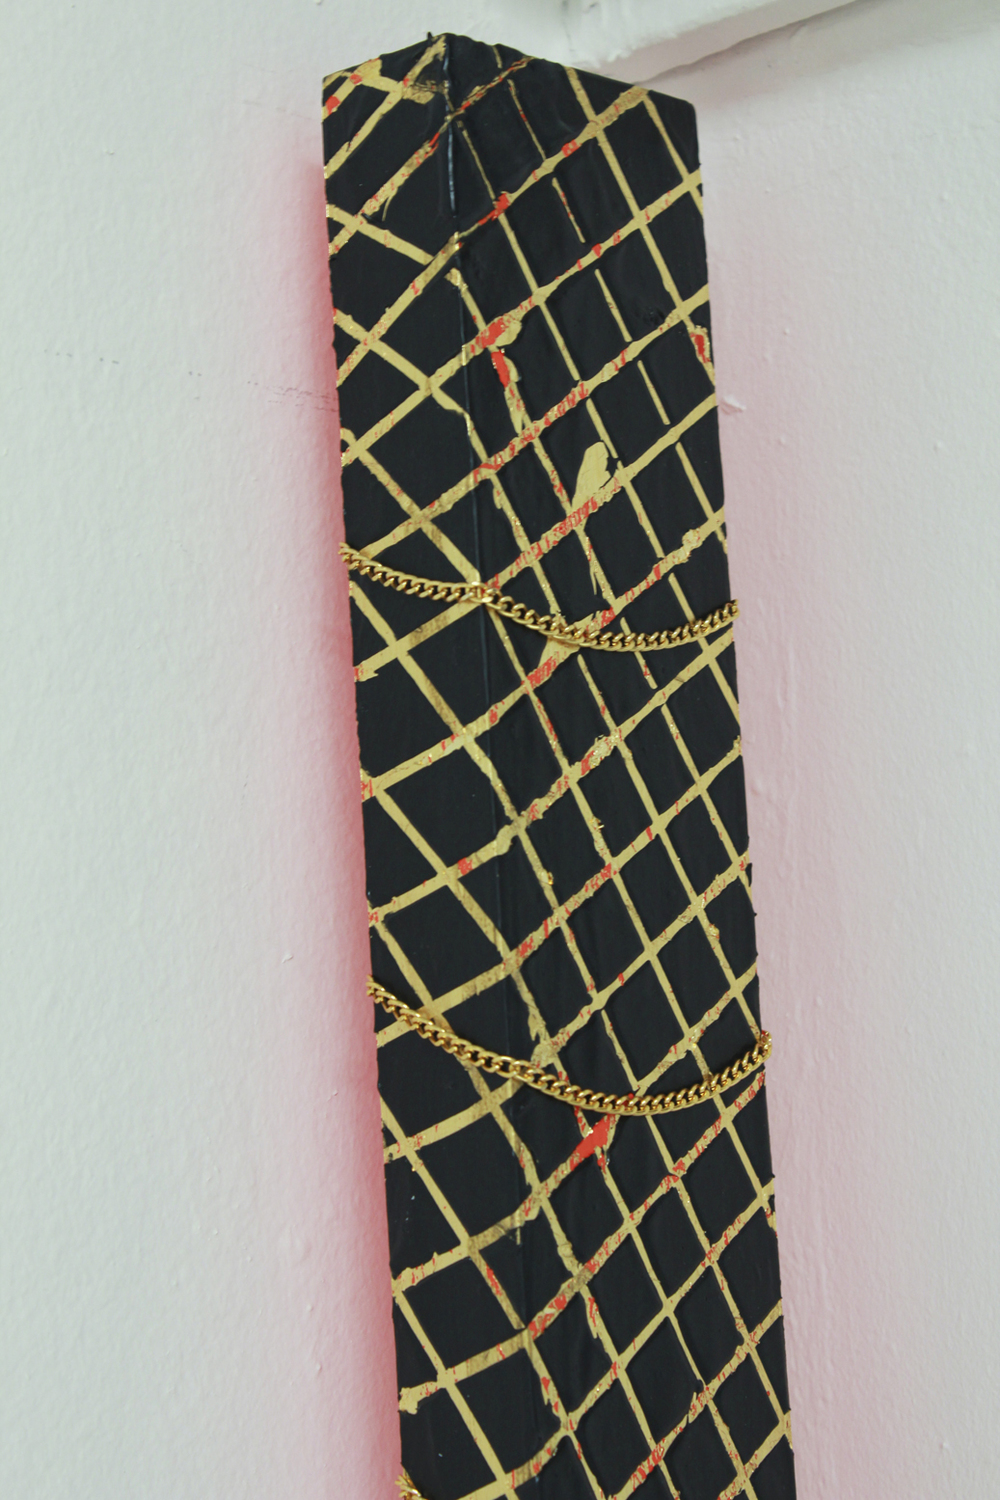 Black Wall Frame, detail, 2014